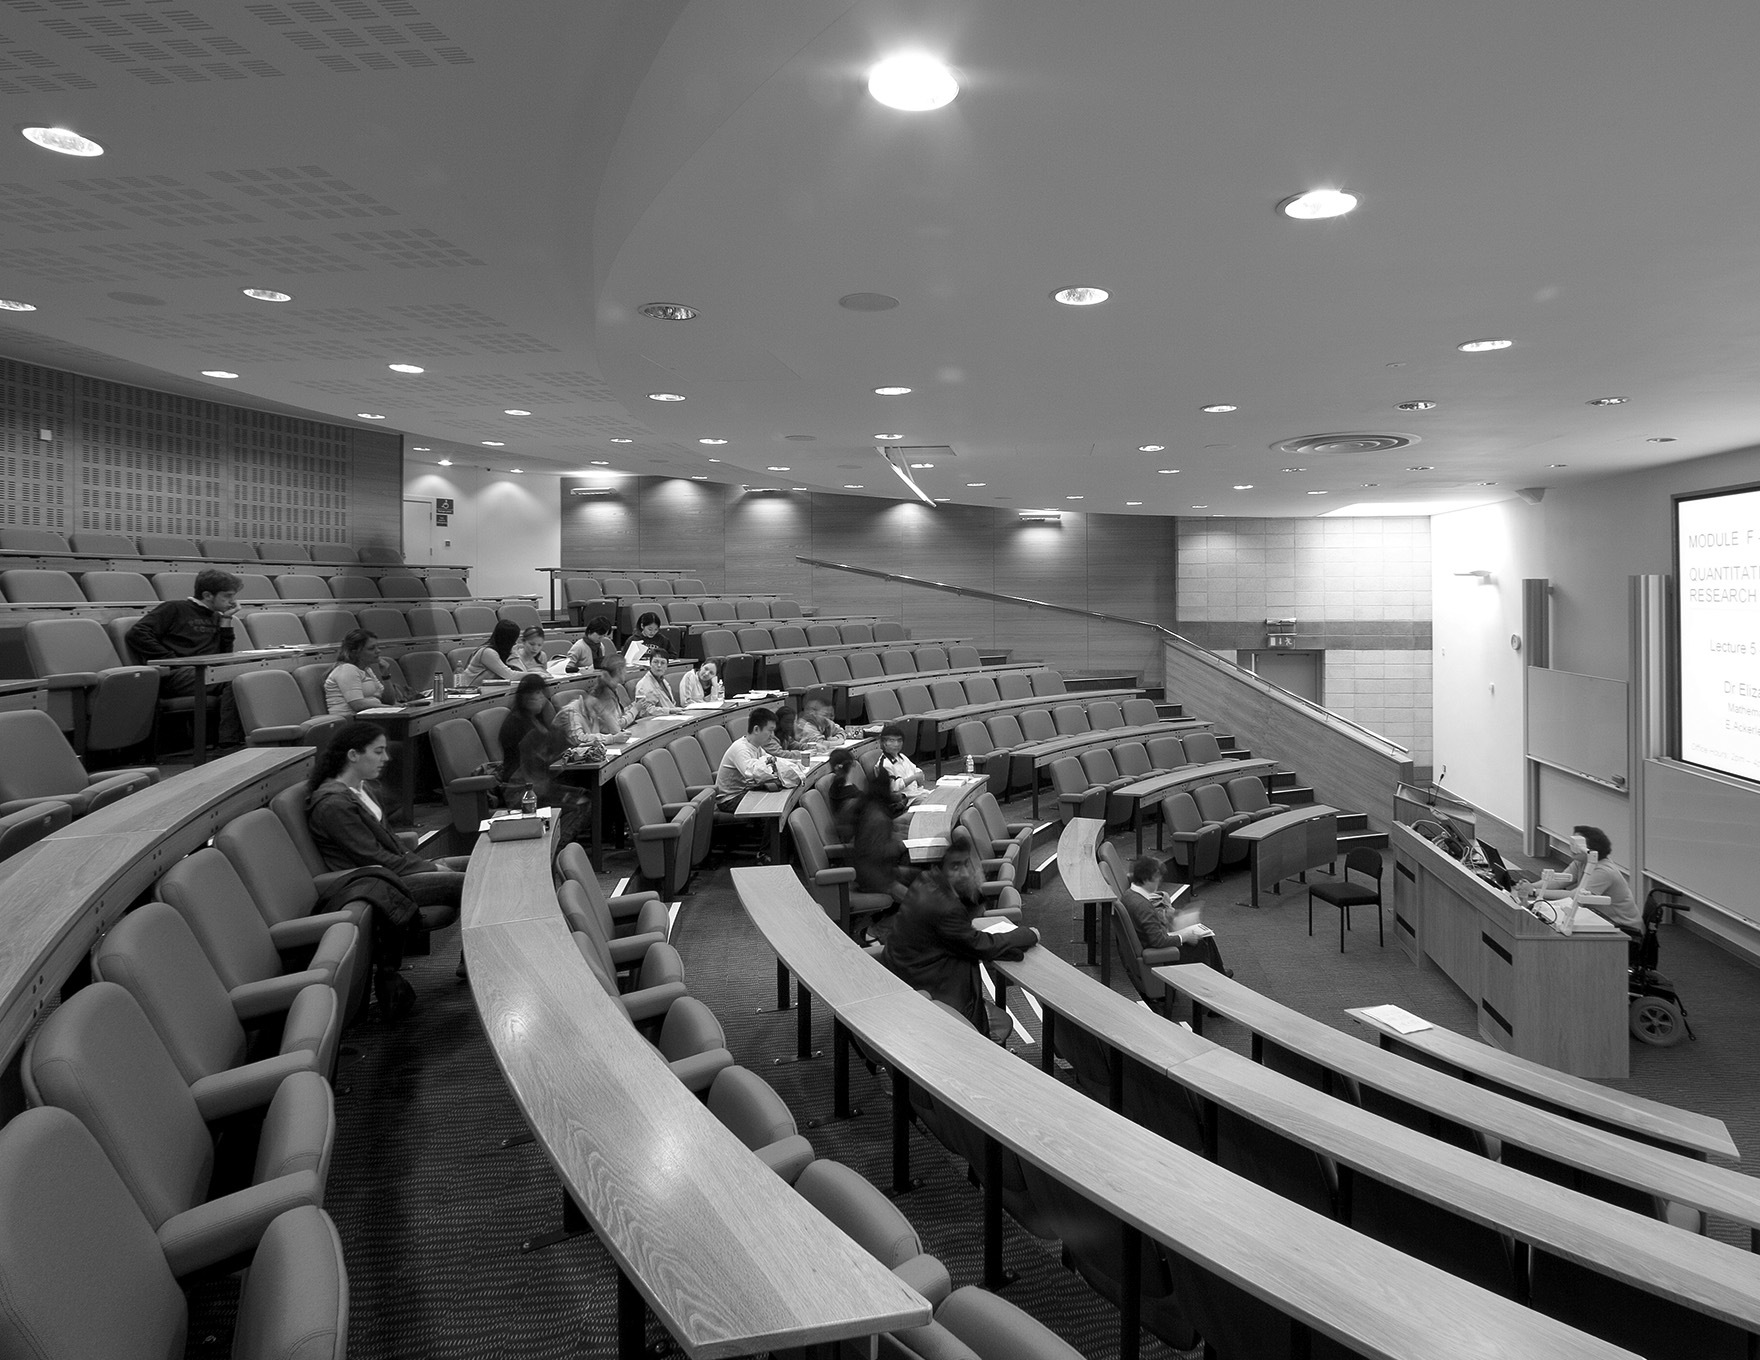 Teaching And Learning Expertise Lancaster University Management School Lecture Theatre Bw L